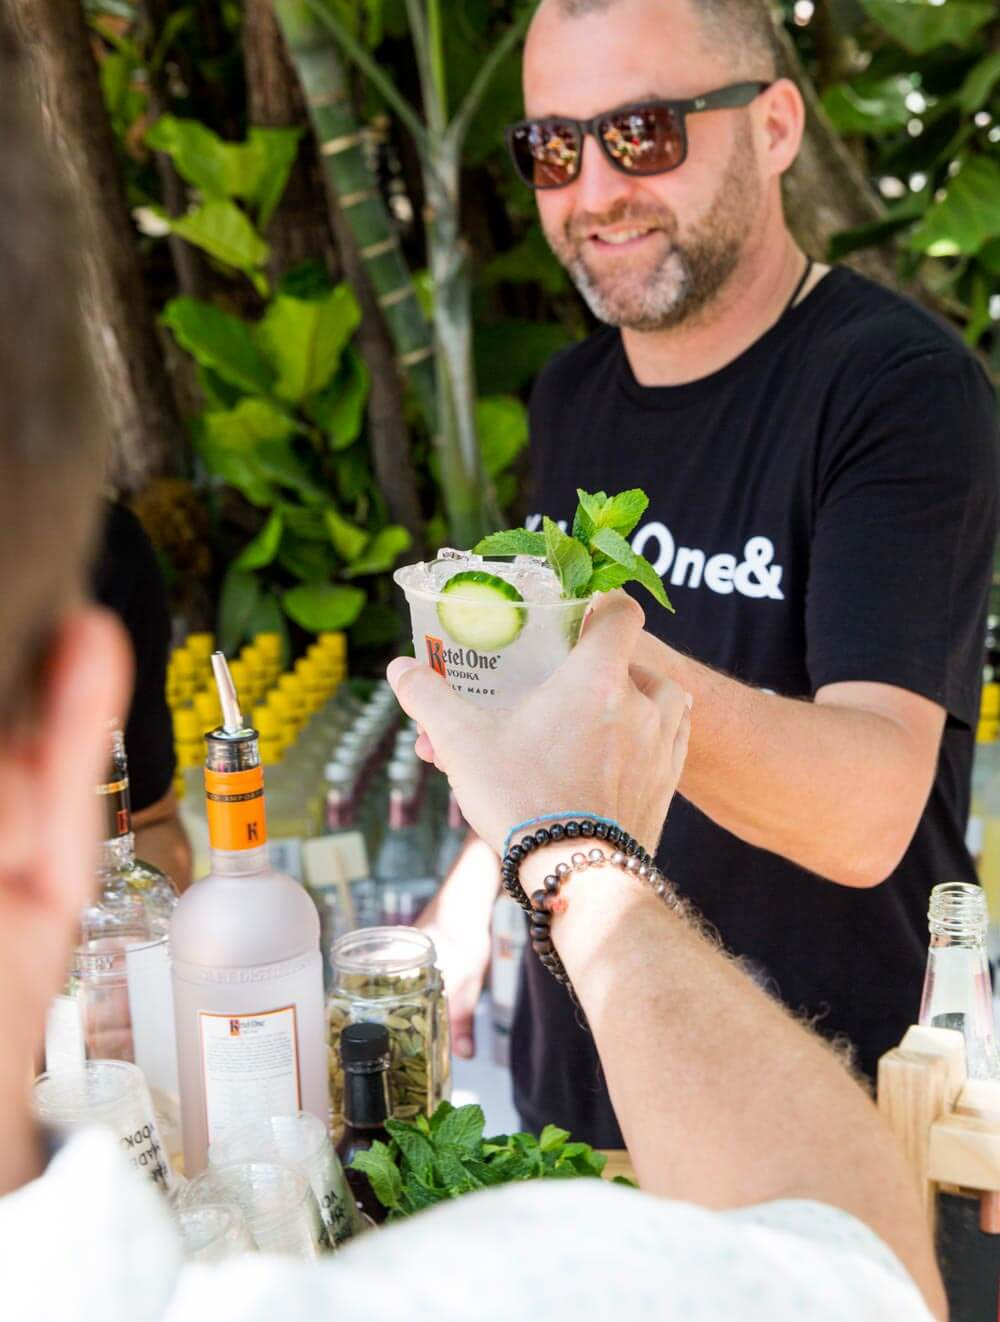 Guests-enjoy-Ketel-Soda-cocktails-at-New-Taste-of-South-Beach-hosted-by-Ketel-One-Family-Made-Vodka,-Wine-N-Dine,-Chef-JJ-Johnson-at-The-Versace-Mansion_